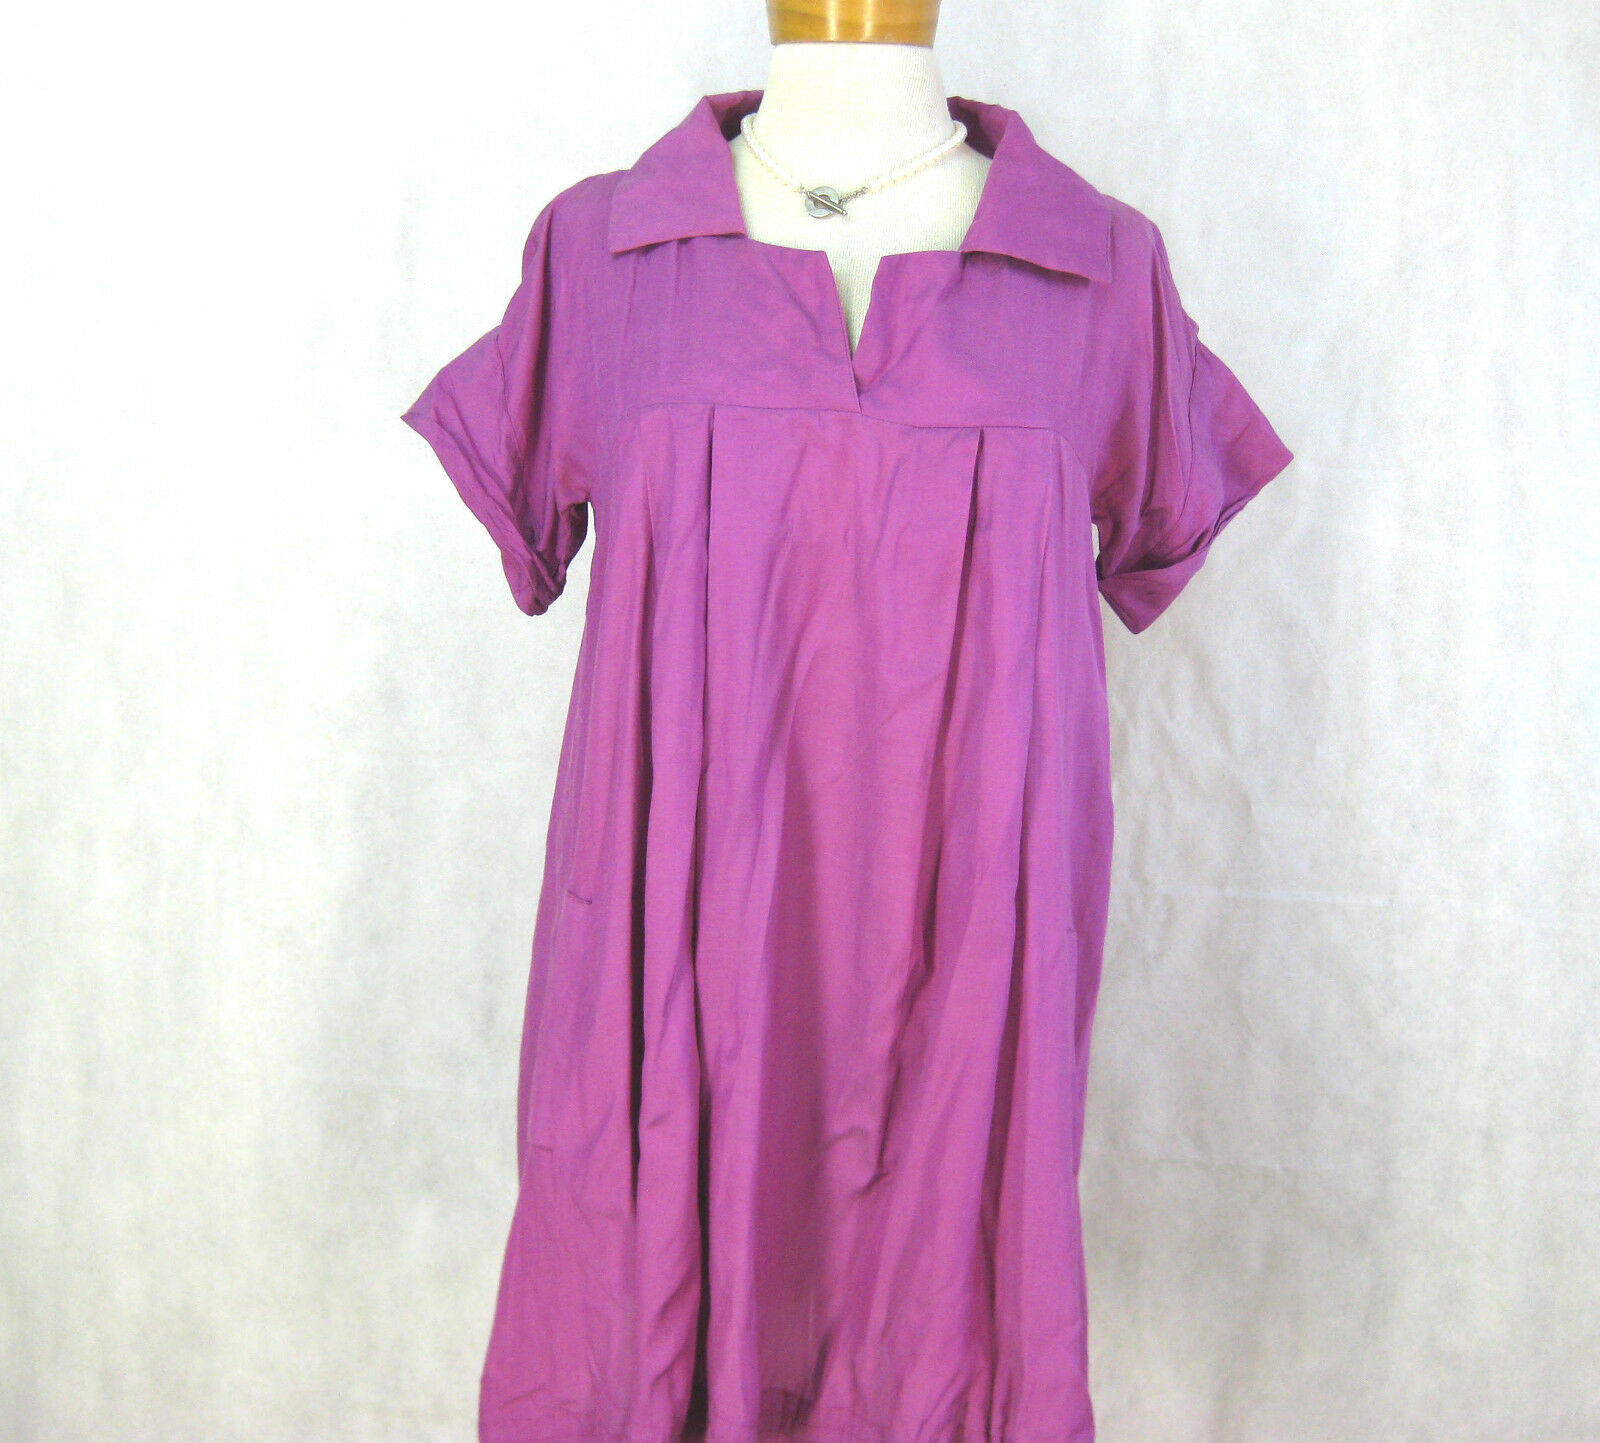 Size S 8 cotton blend magenta coloured dress by KIRRILY JOHNSTON